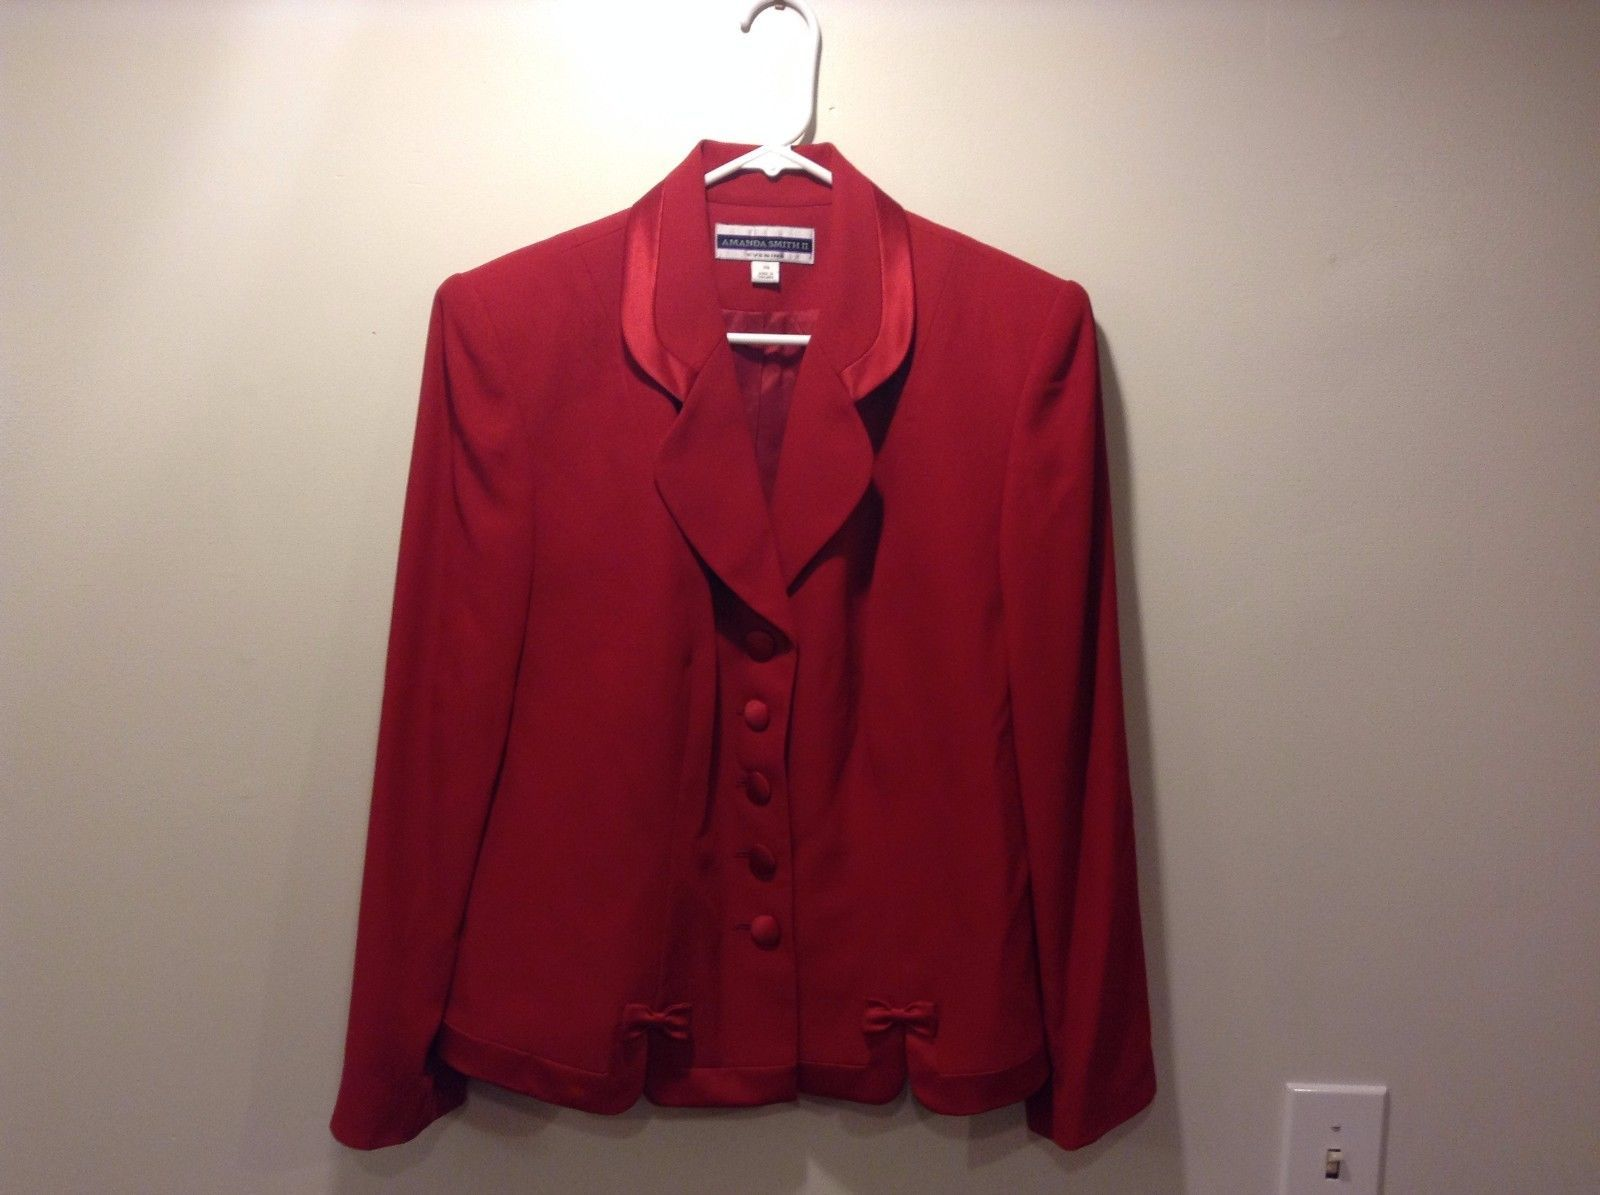 Amanda Smith II Evening Red Button Up Dressy Jacket Coat Sz 14W